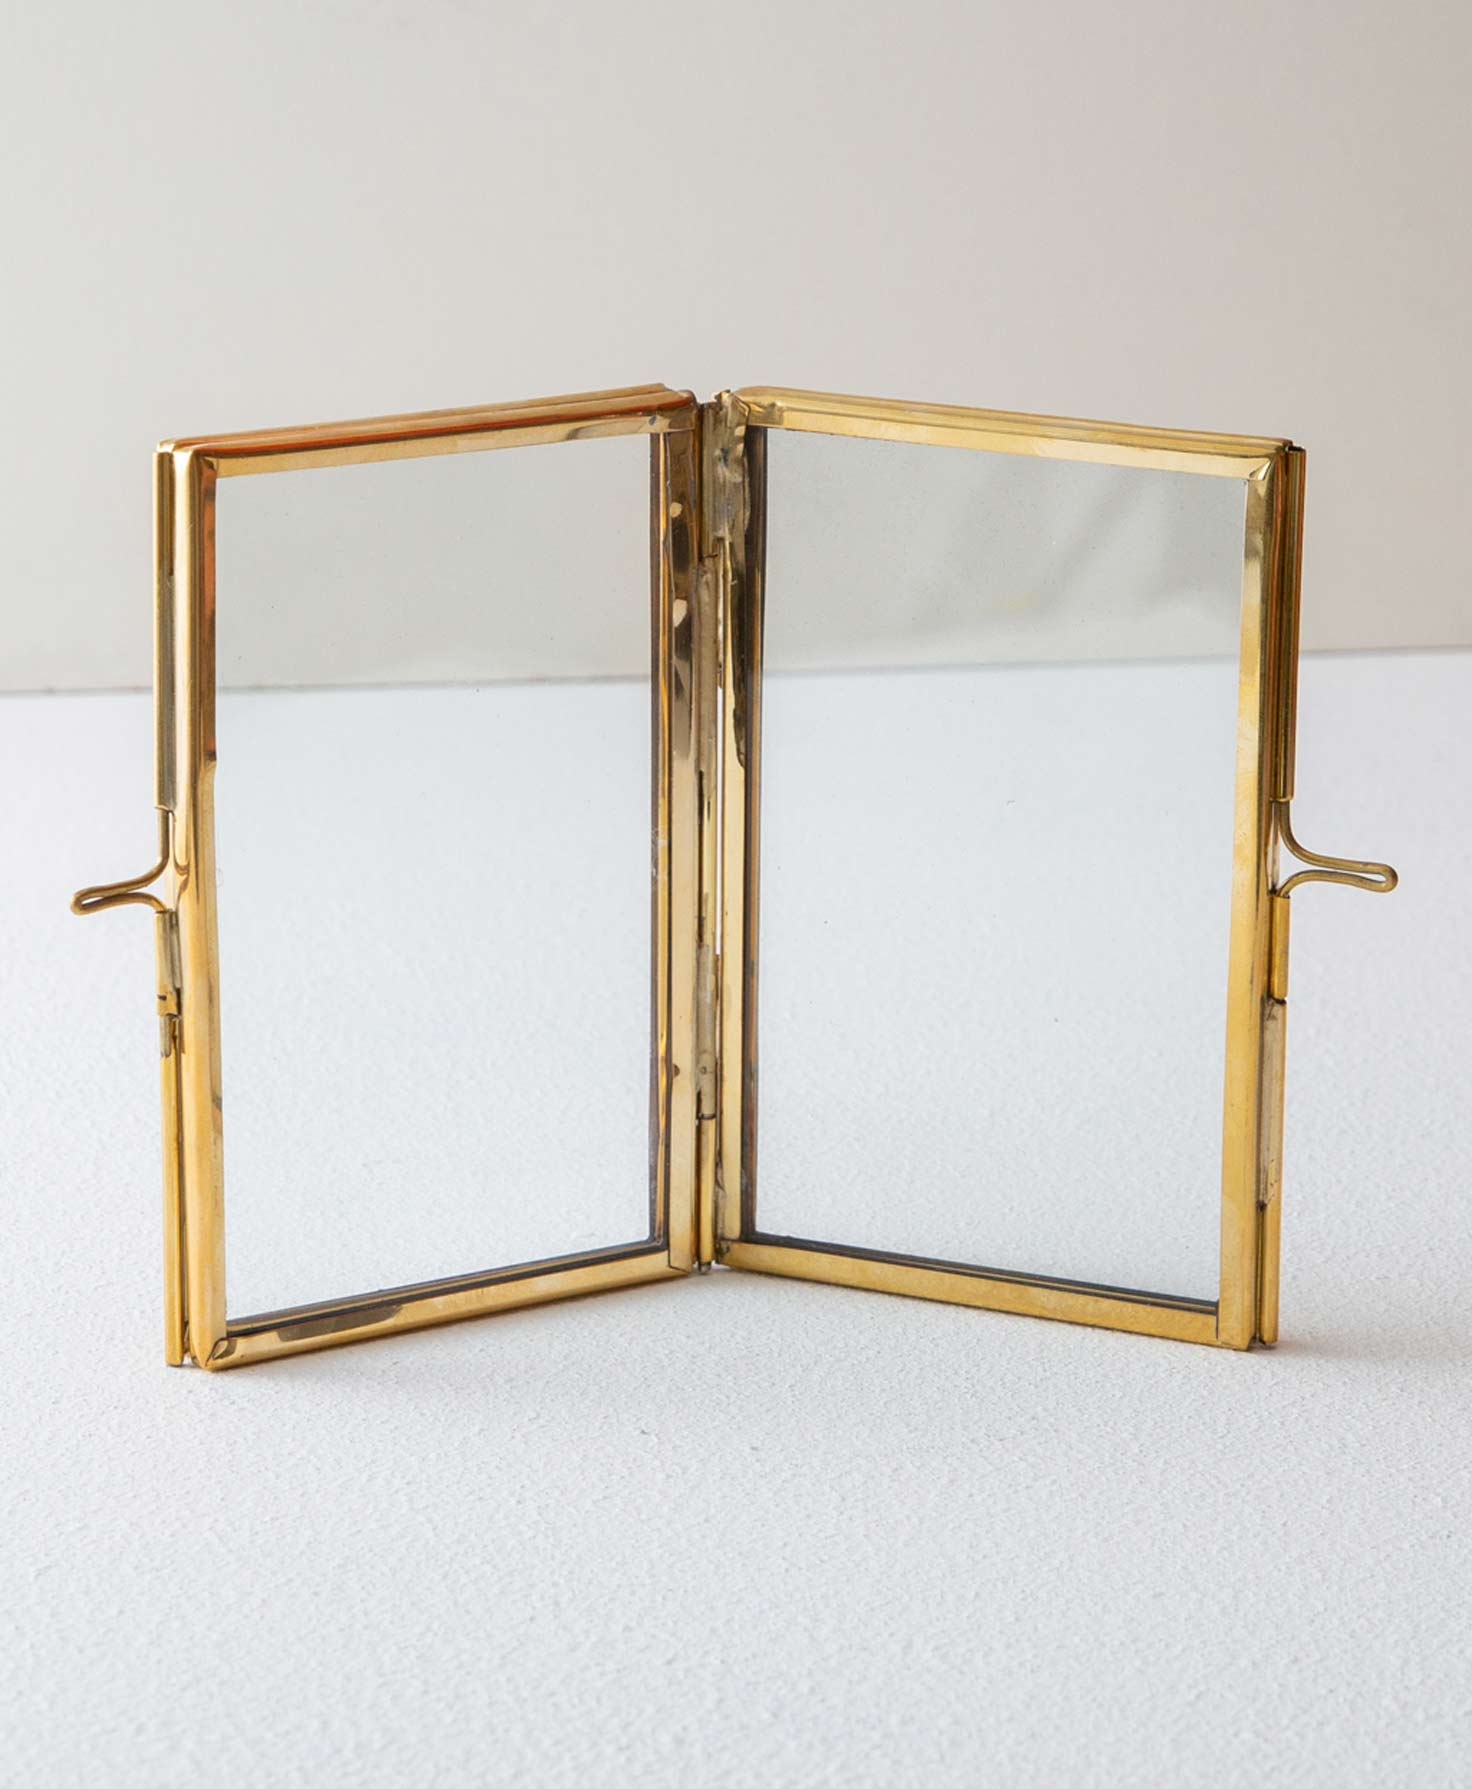 The Brass and Glass Double Frame stands upright and is slightly propped open. Two rectangular glass panels are framed with shining brass. The two panels are connected via a brass hinge in the center. On the two outer edges of the frames, a mechanism enables the brass frame to open so that a photo may be placed between the glass and the frame.